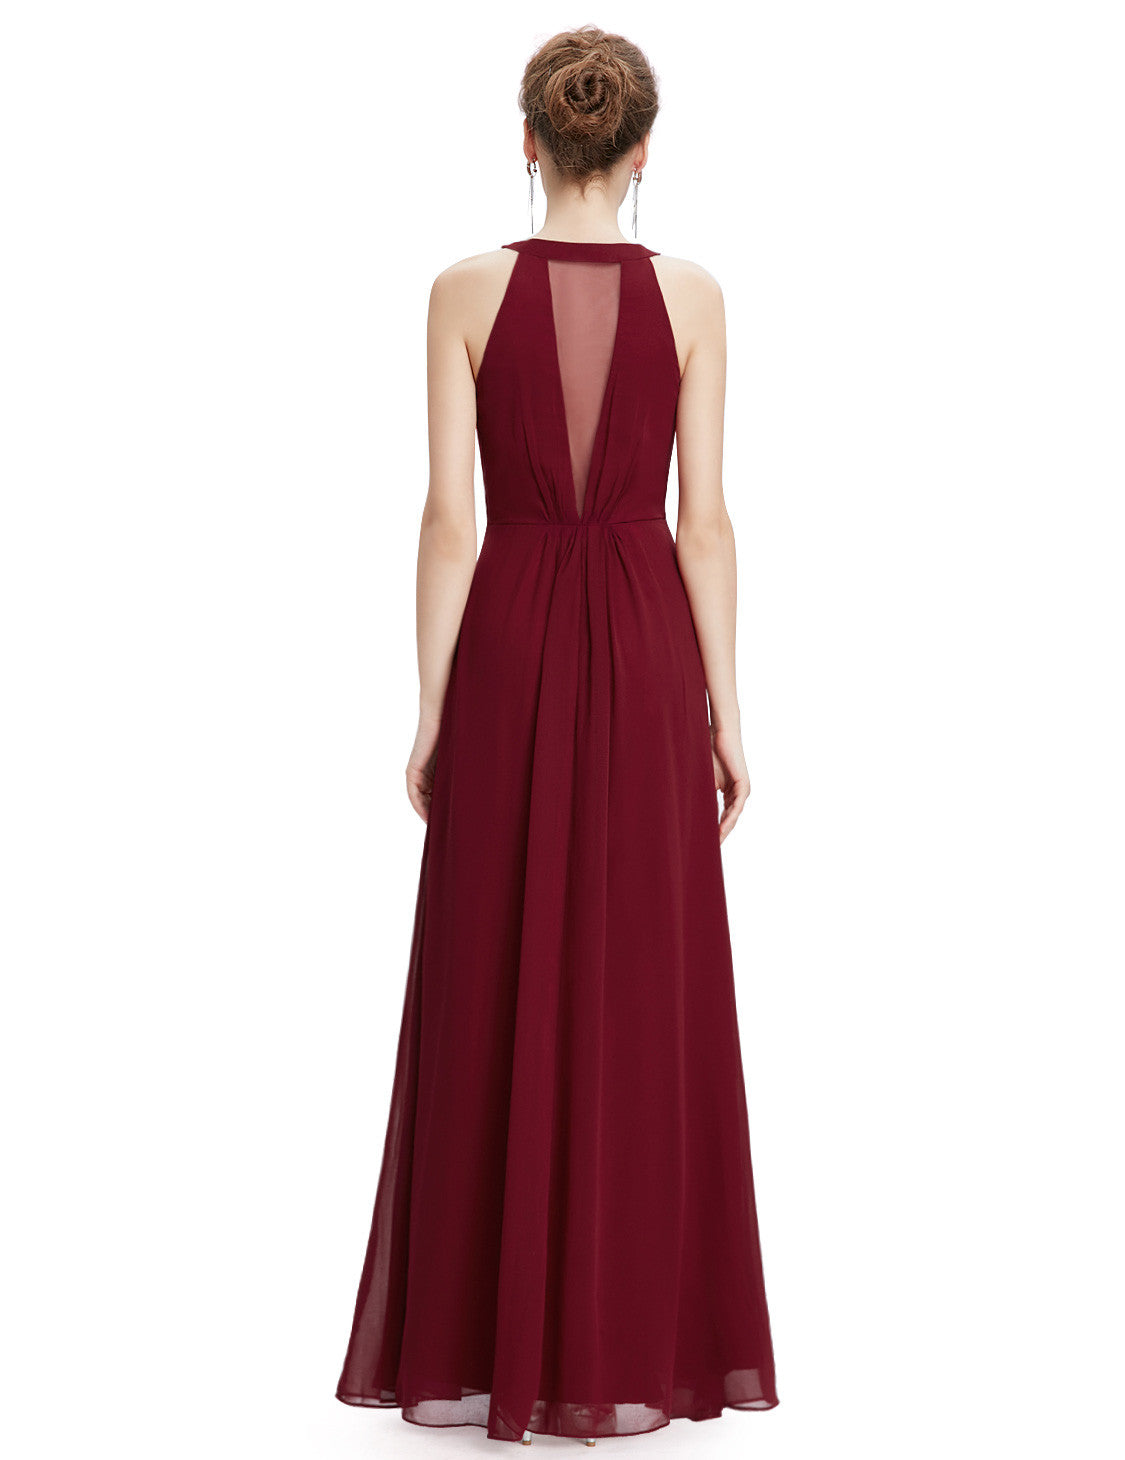 Burgundy Sleeveless Maxi Evening Dress - O'beige